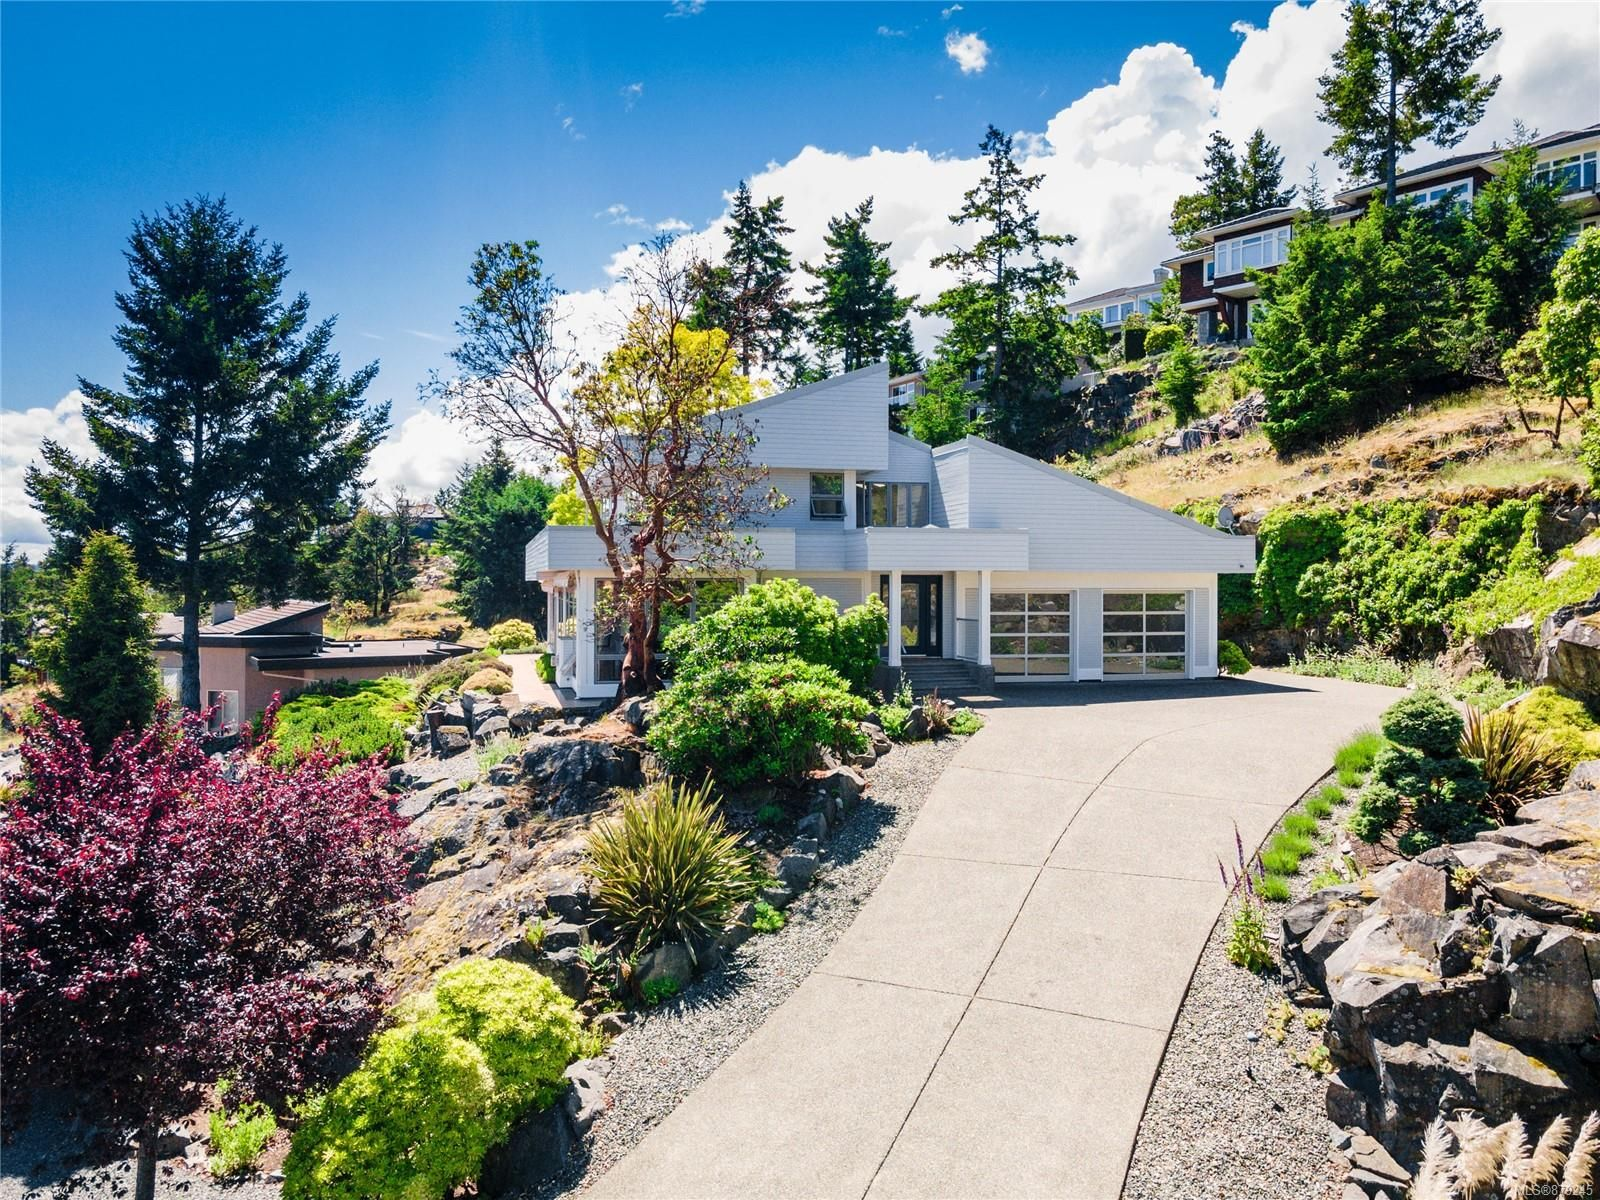 Main Photo: 3468 Redden Rd in : PQ Fairwinds House for sale (Parksville/Qualicum)  : MLS®# 879245